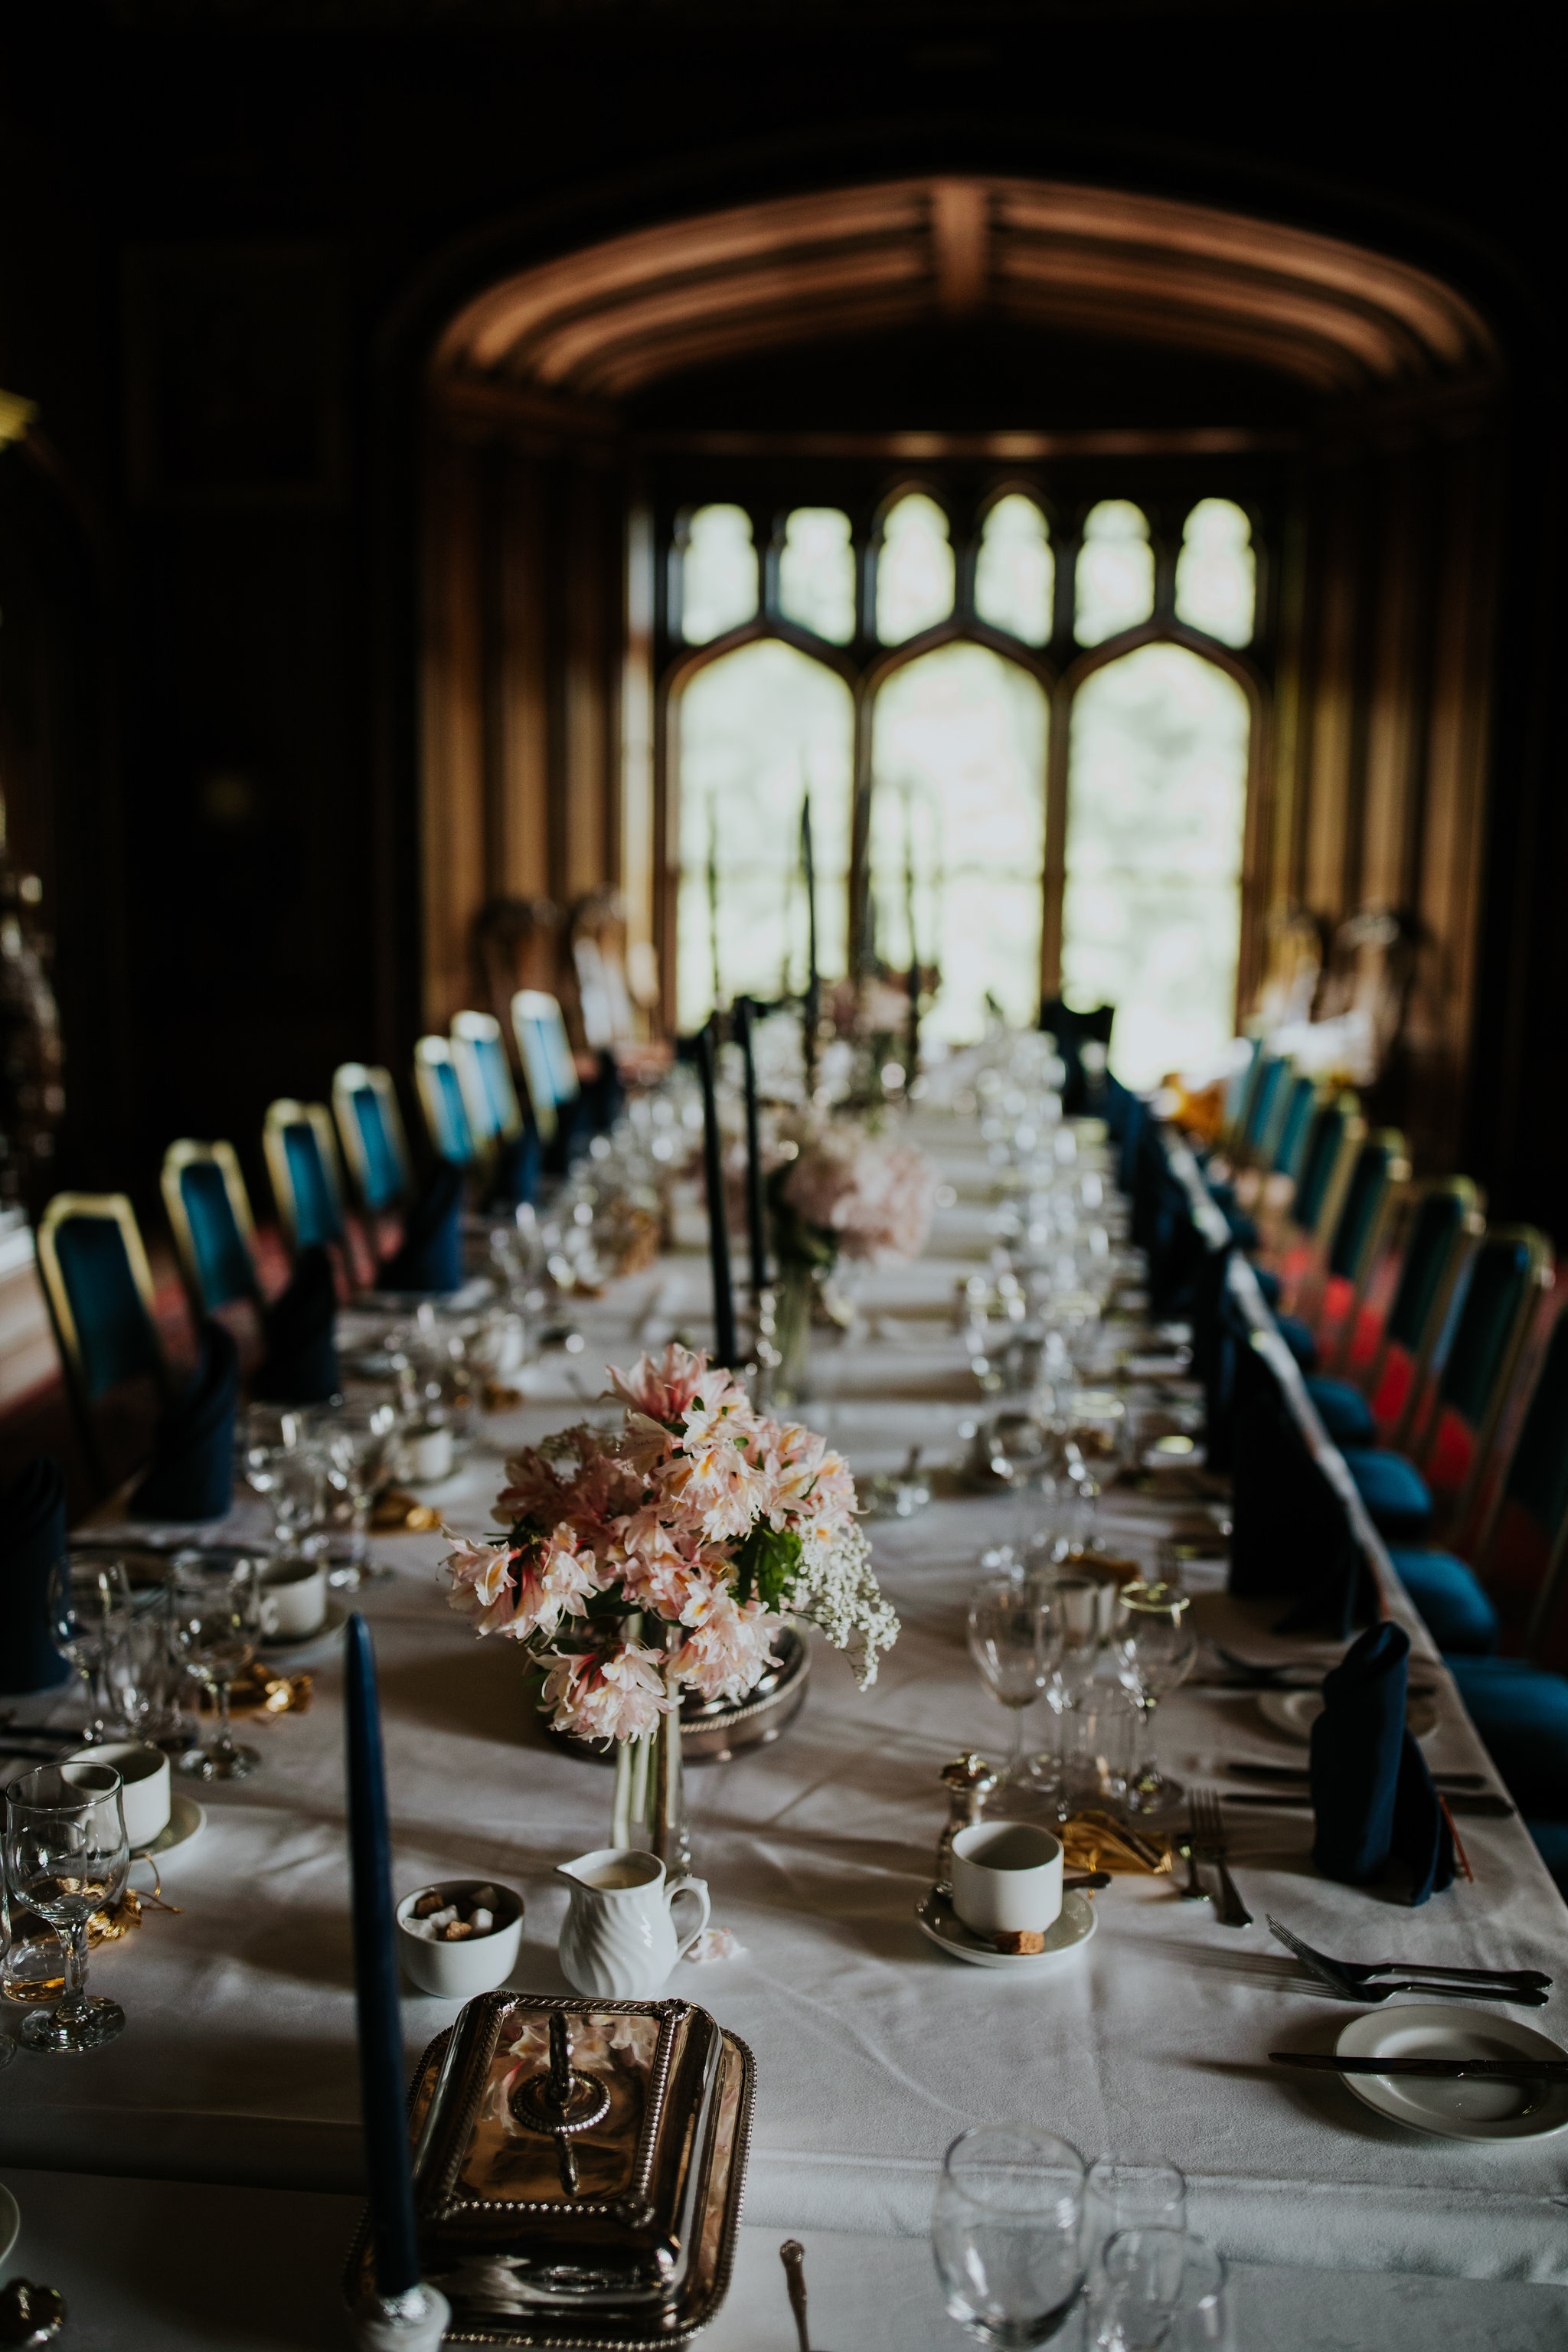 Duns_Castle_wedding_photographer_ross_alexander_photography (84).jpg